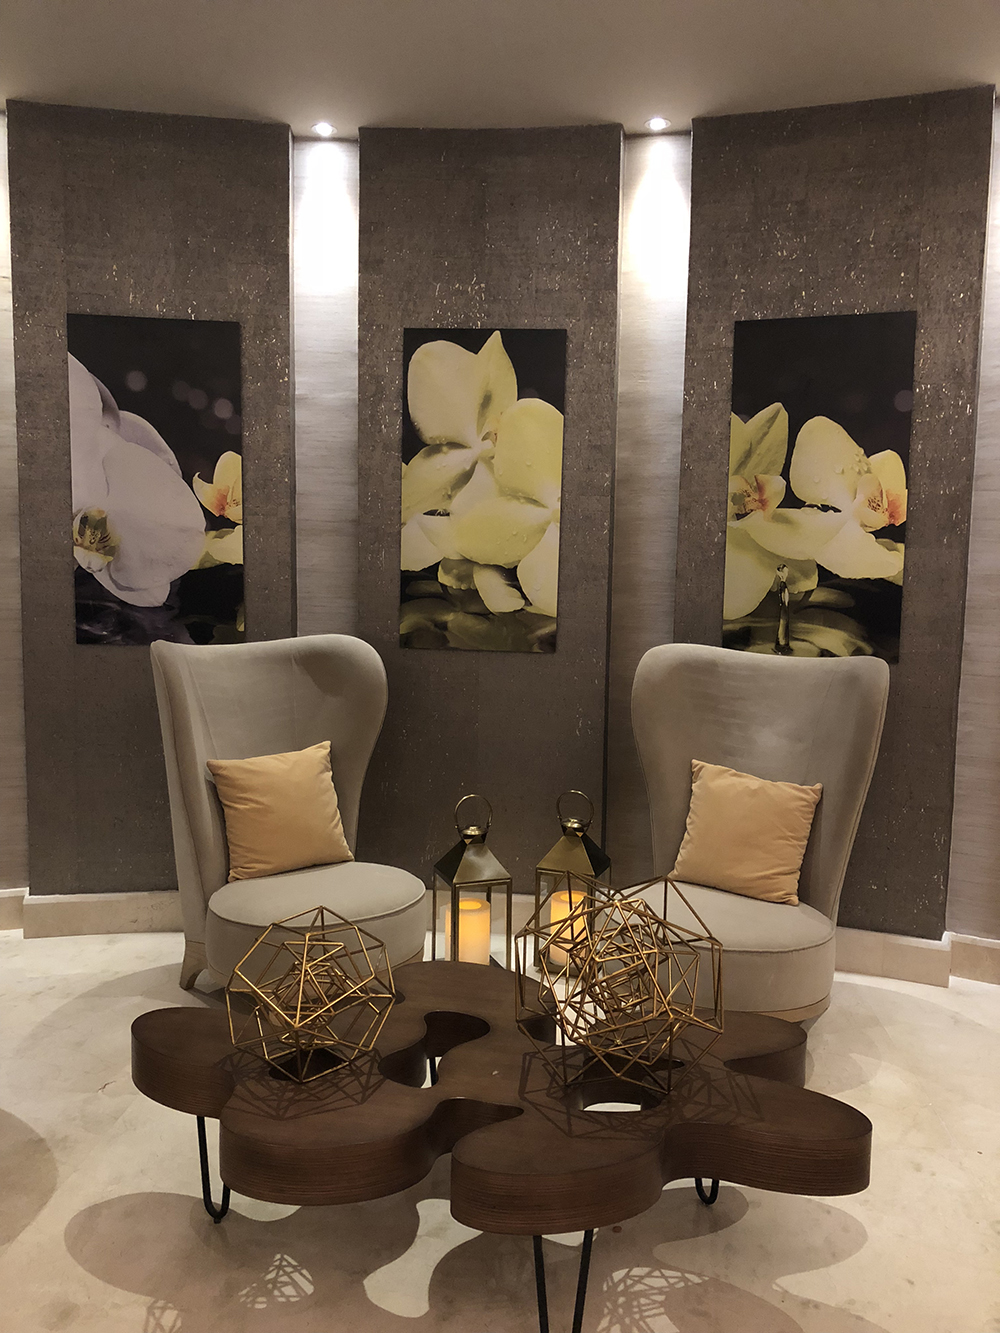 The elegantly decorated spa lounge area.